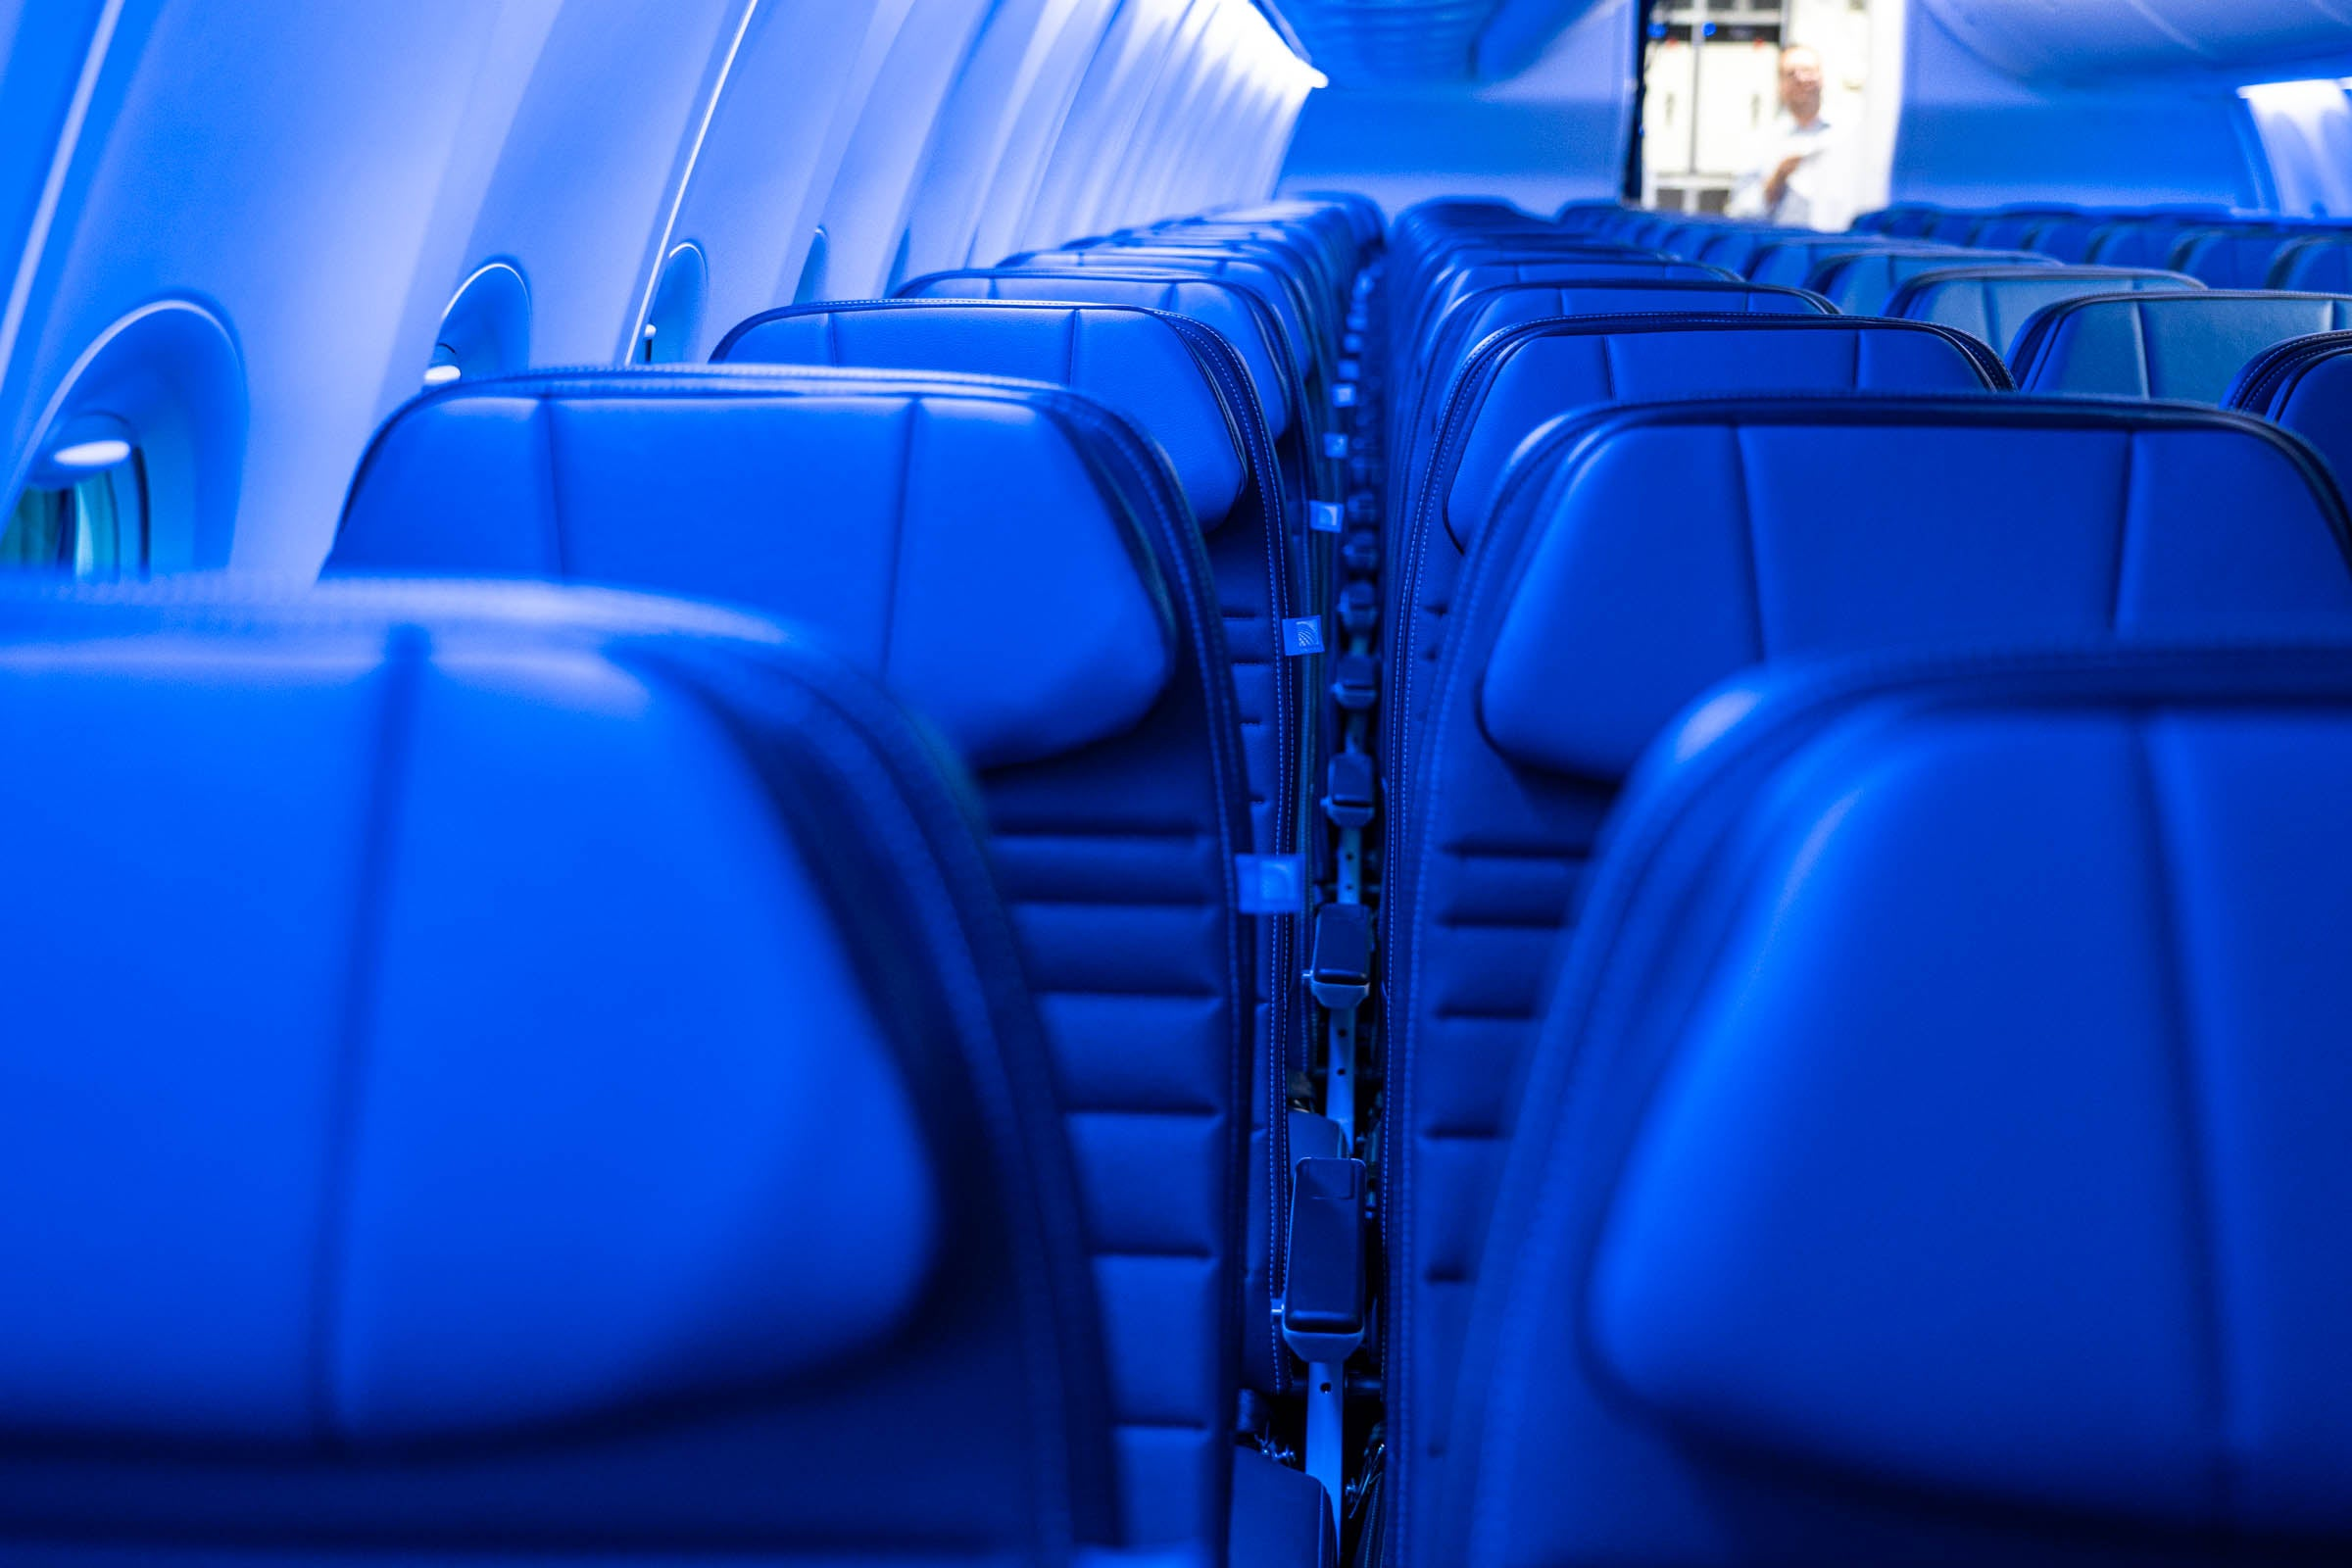 First look: United's new narrow-body cabins